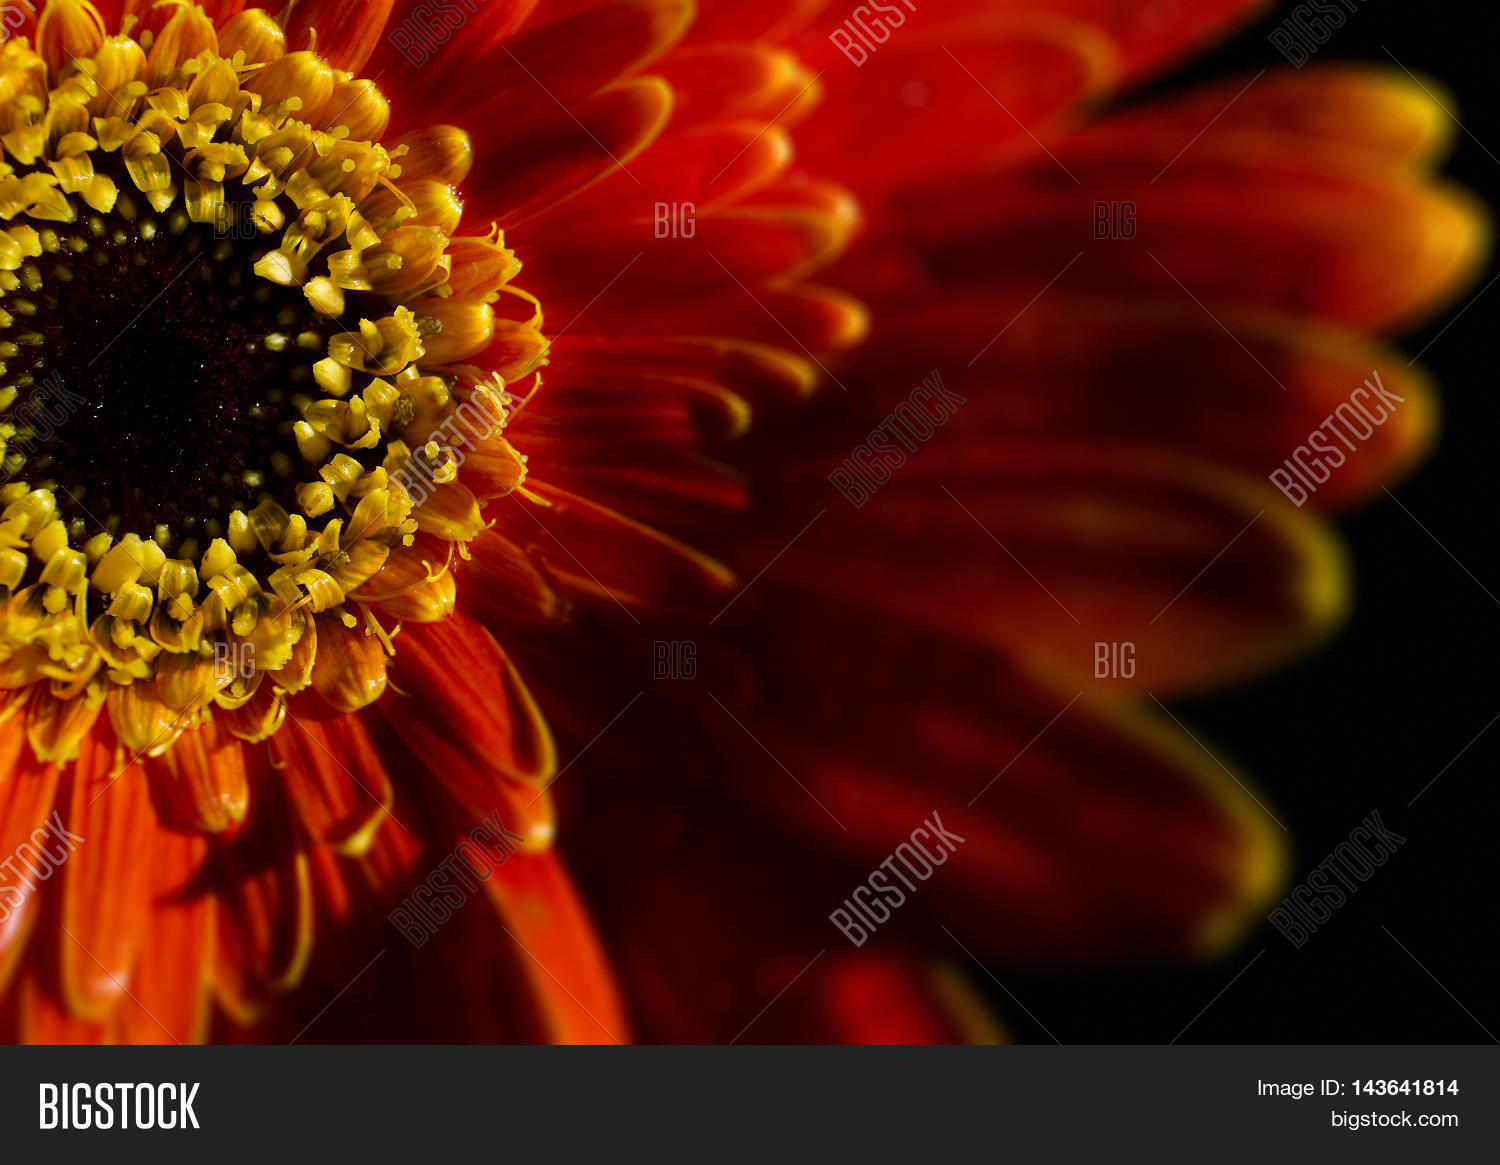 Like Fire Abstract Image Photo Free Trial Bigstock